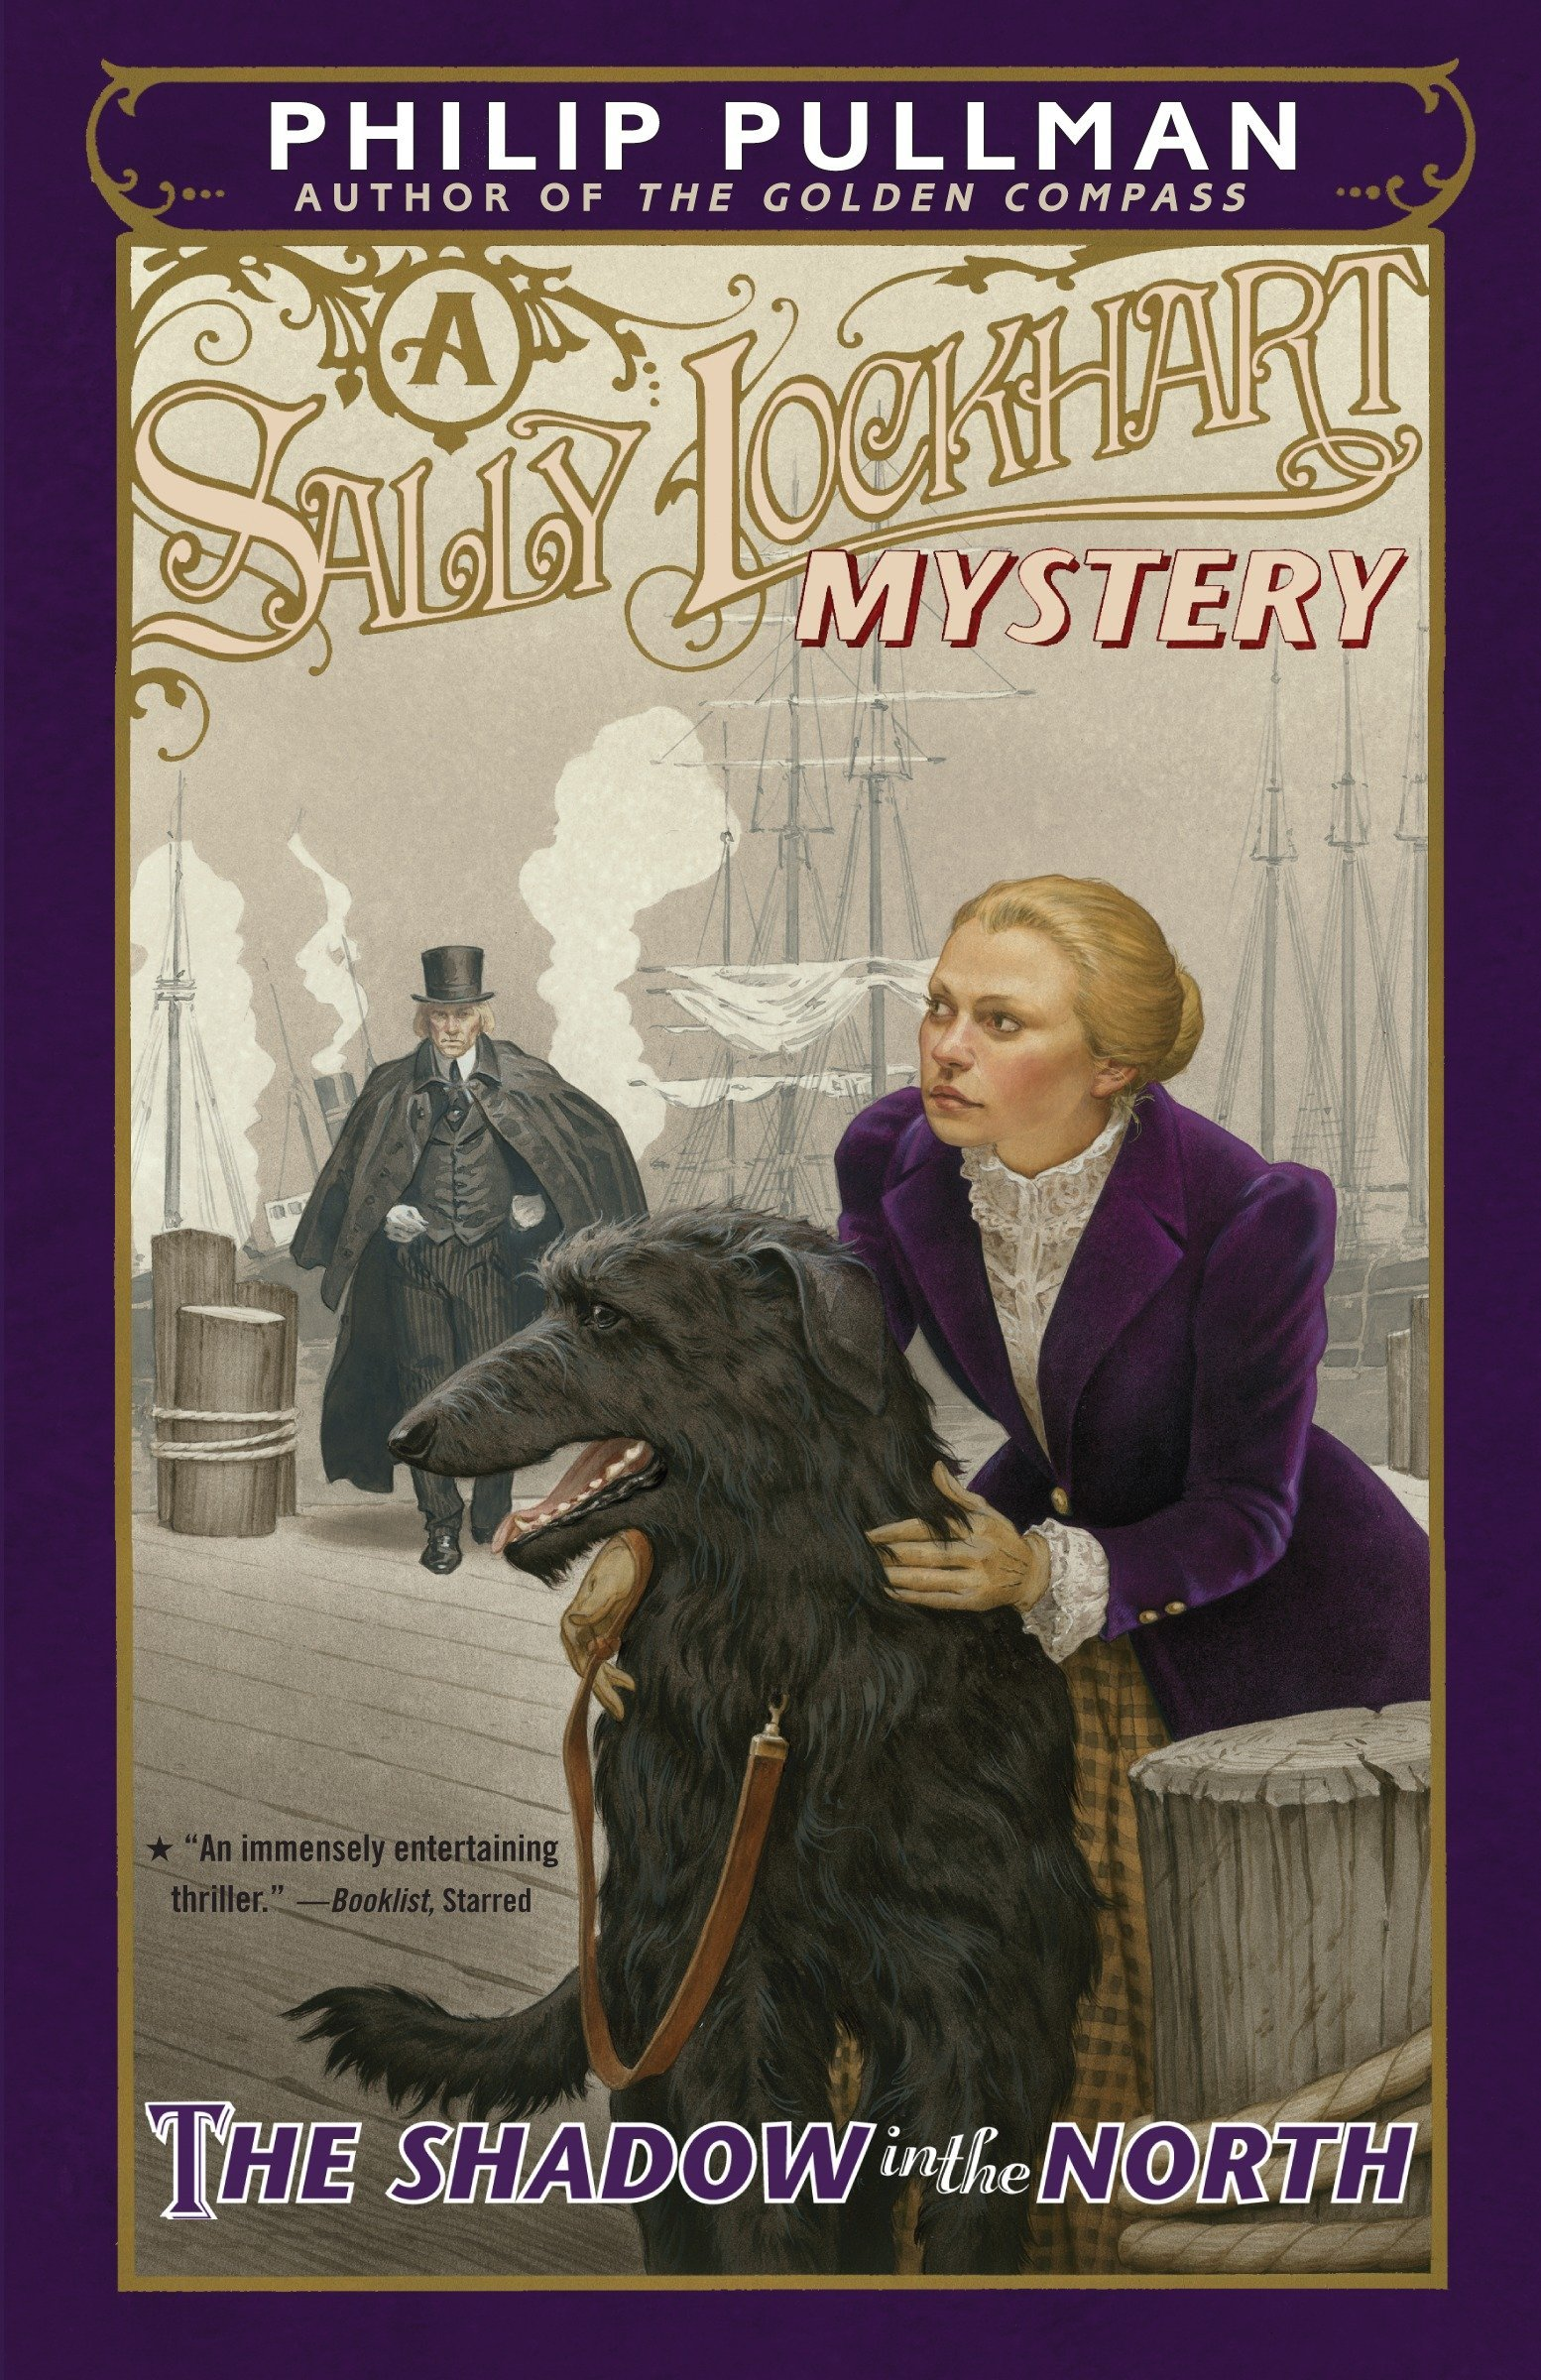 Amazon.com: The Shadow in the North: A Sally Lockhart Mystery  (9780375845154): Philip Pullman: Books